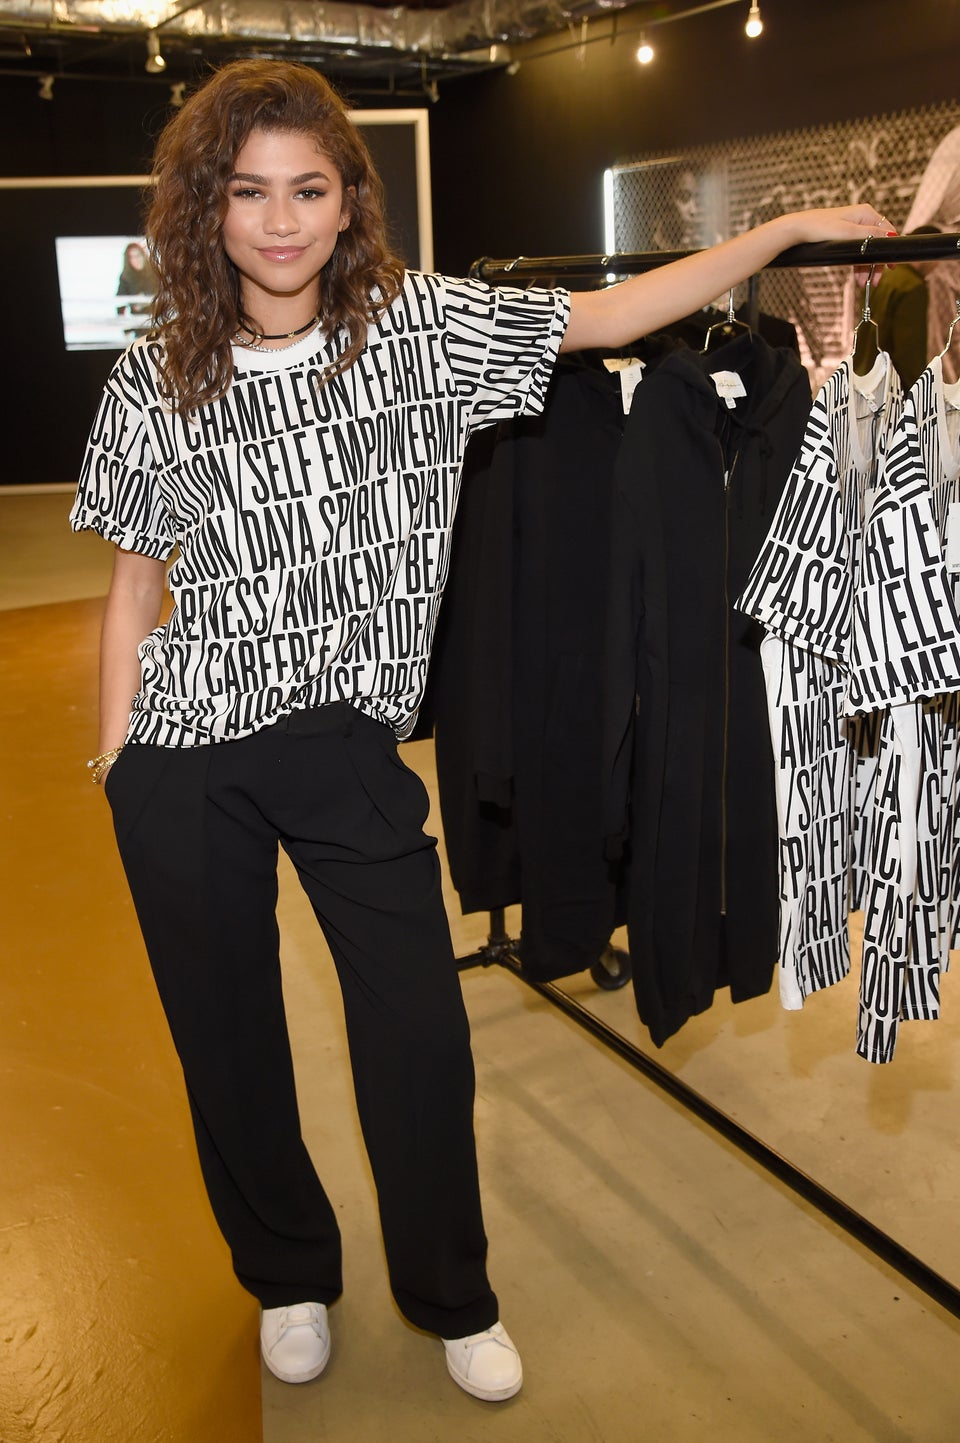 Zendaya Explains Why It's Important That Everyone Can Fit Into Her New Clothing Line